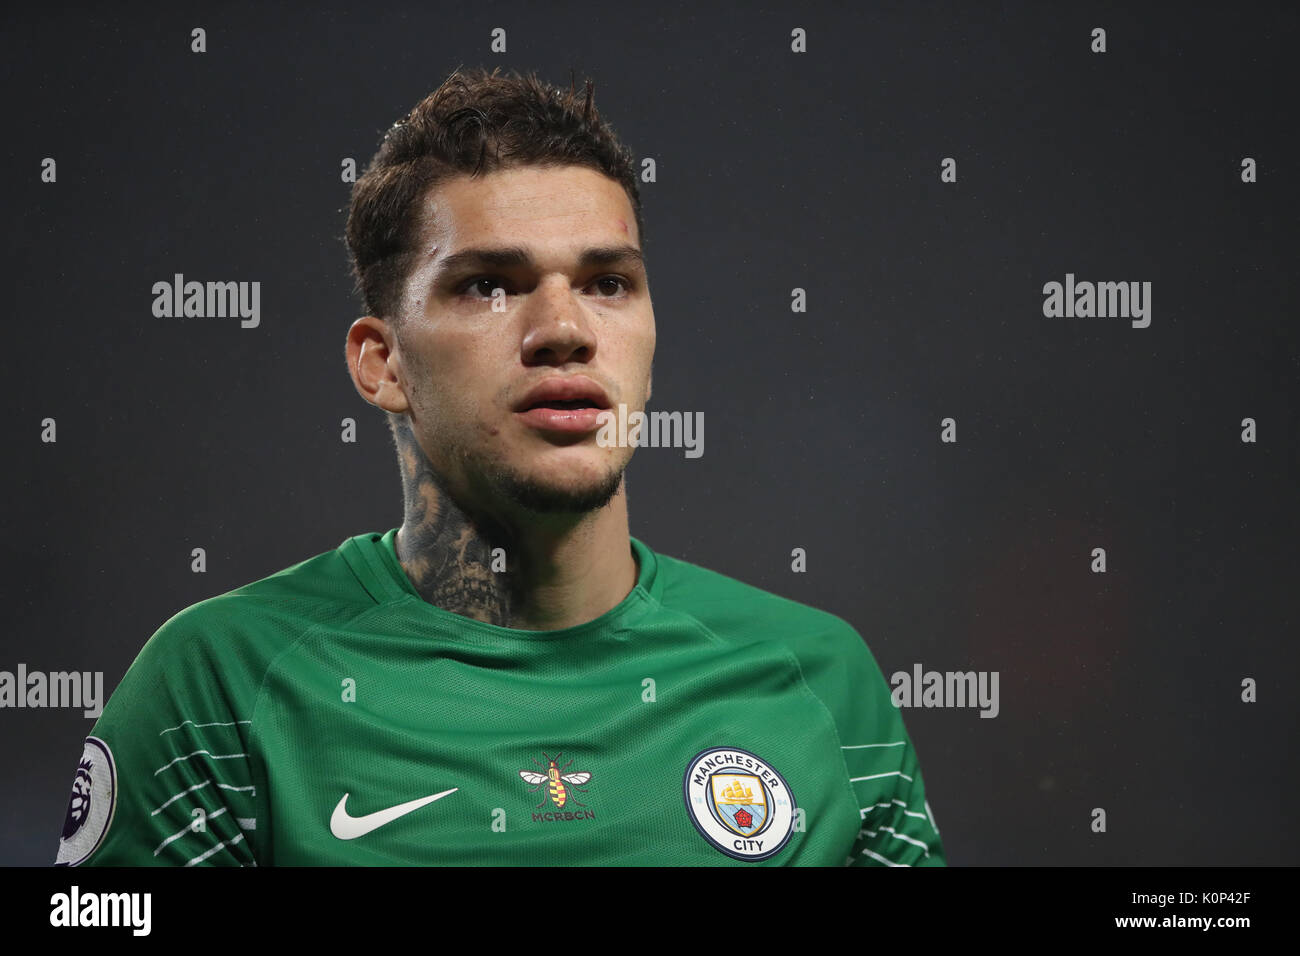 Manchester City goalkeeper Ederson Stock Royalty Free Image